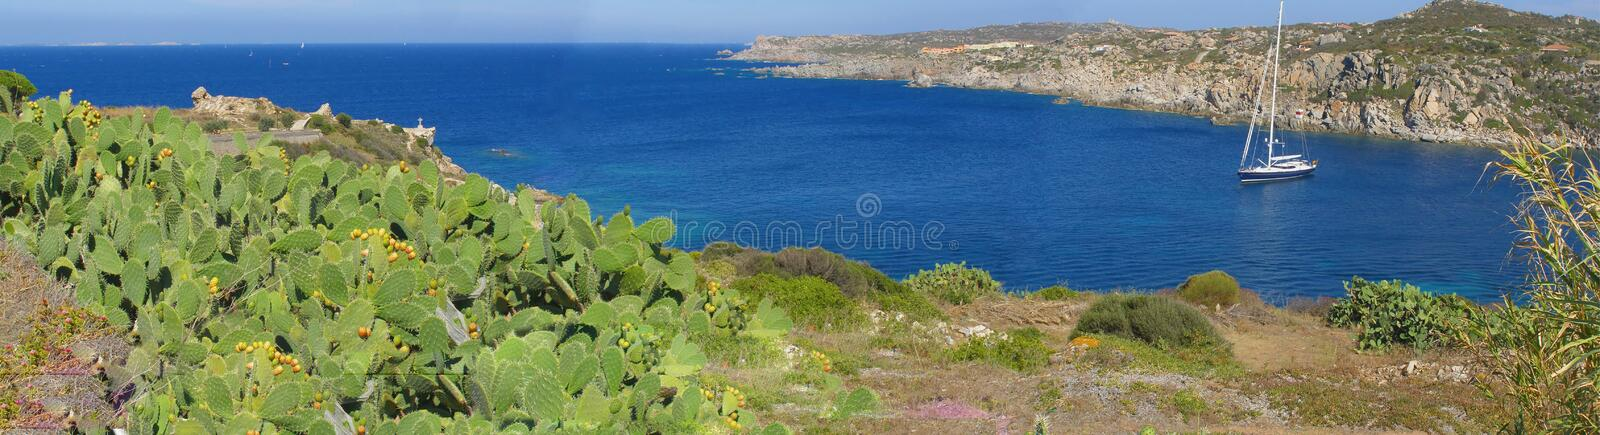 Beautiful sea cove panorama, Sardinia - Italy royalty free stock image